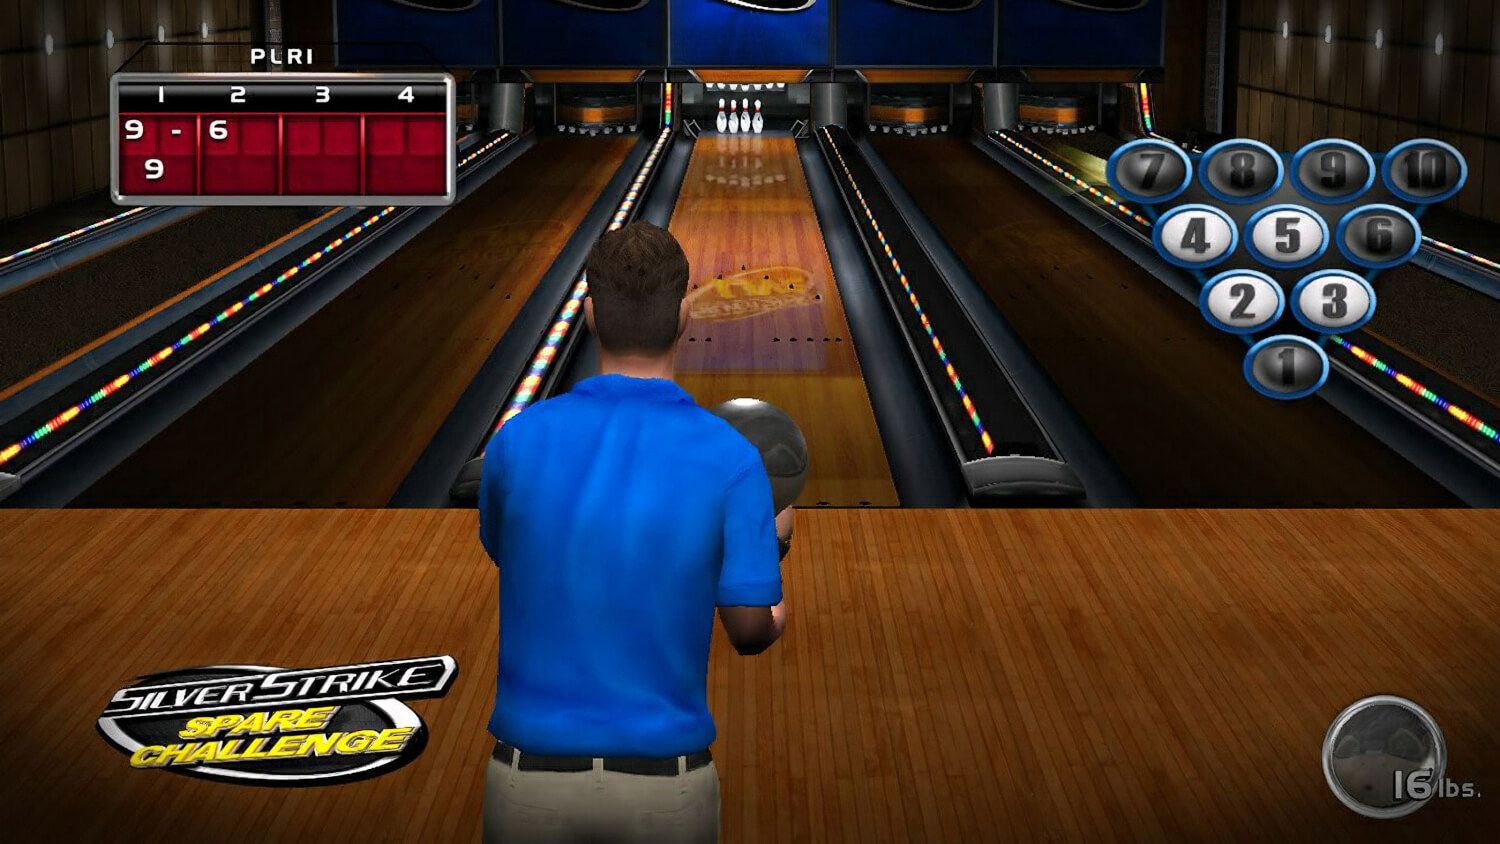 silver strike bowling machine